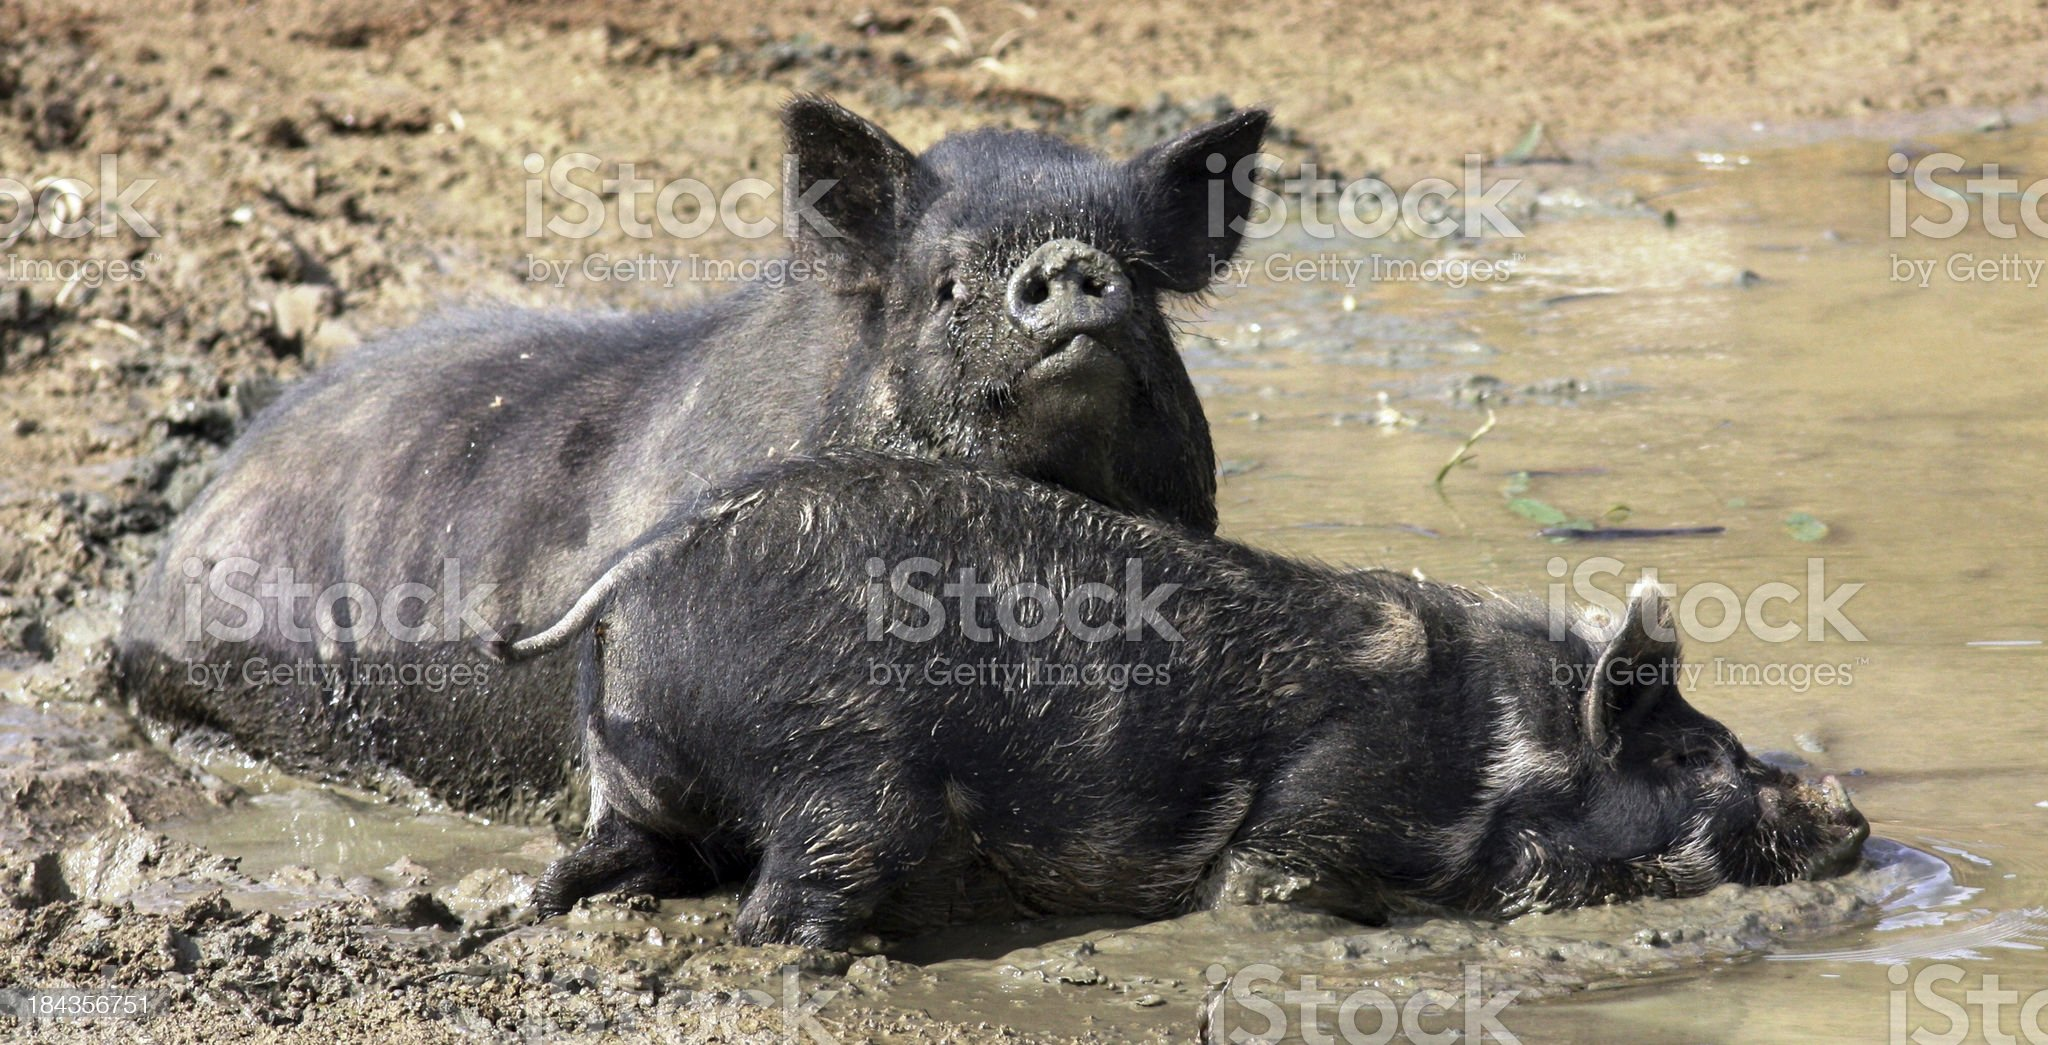 Pigs messing in the Mud royalty-free stock photo